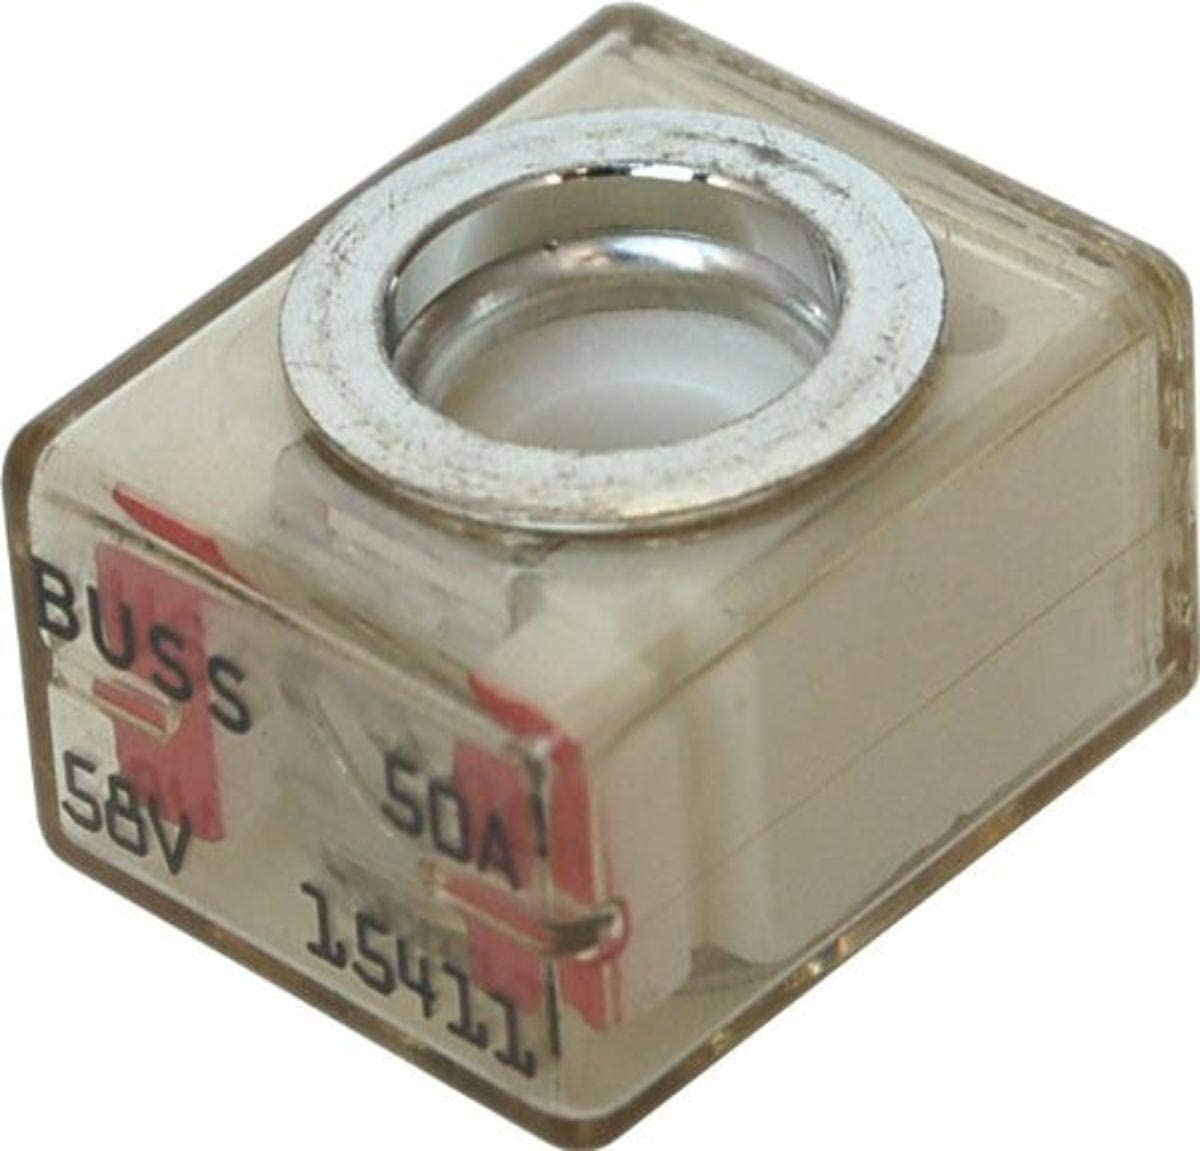 Amazon.com: Blue Sea Systems 5177 Battery Terminal Fuse 50-AMP, blue/sea:  Automotive | Battery Box 50 Amp Fuse |  | Amazon.com